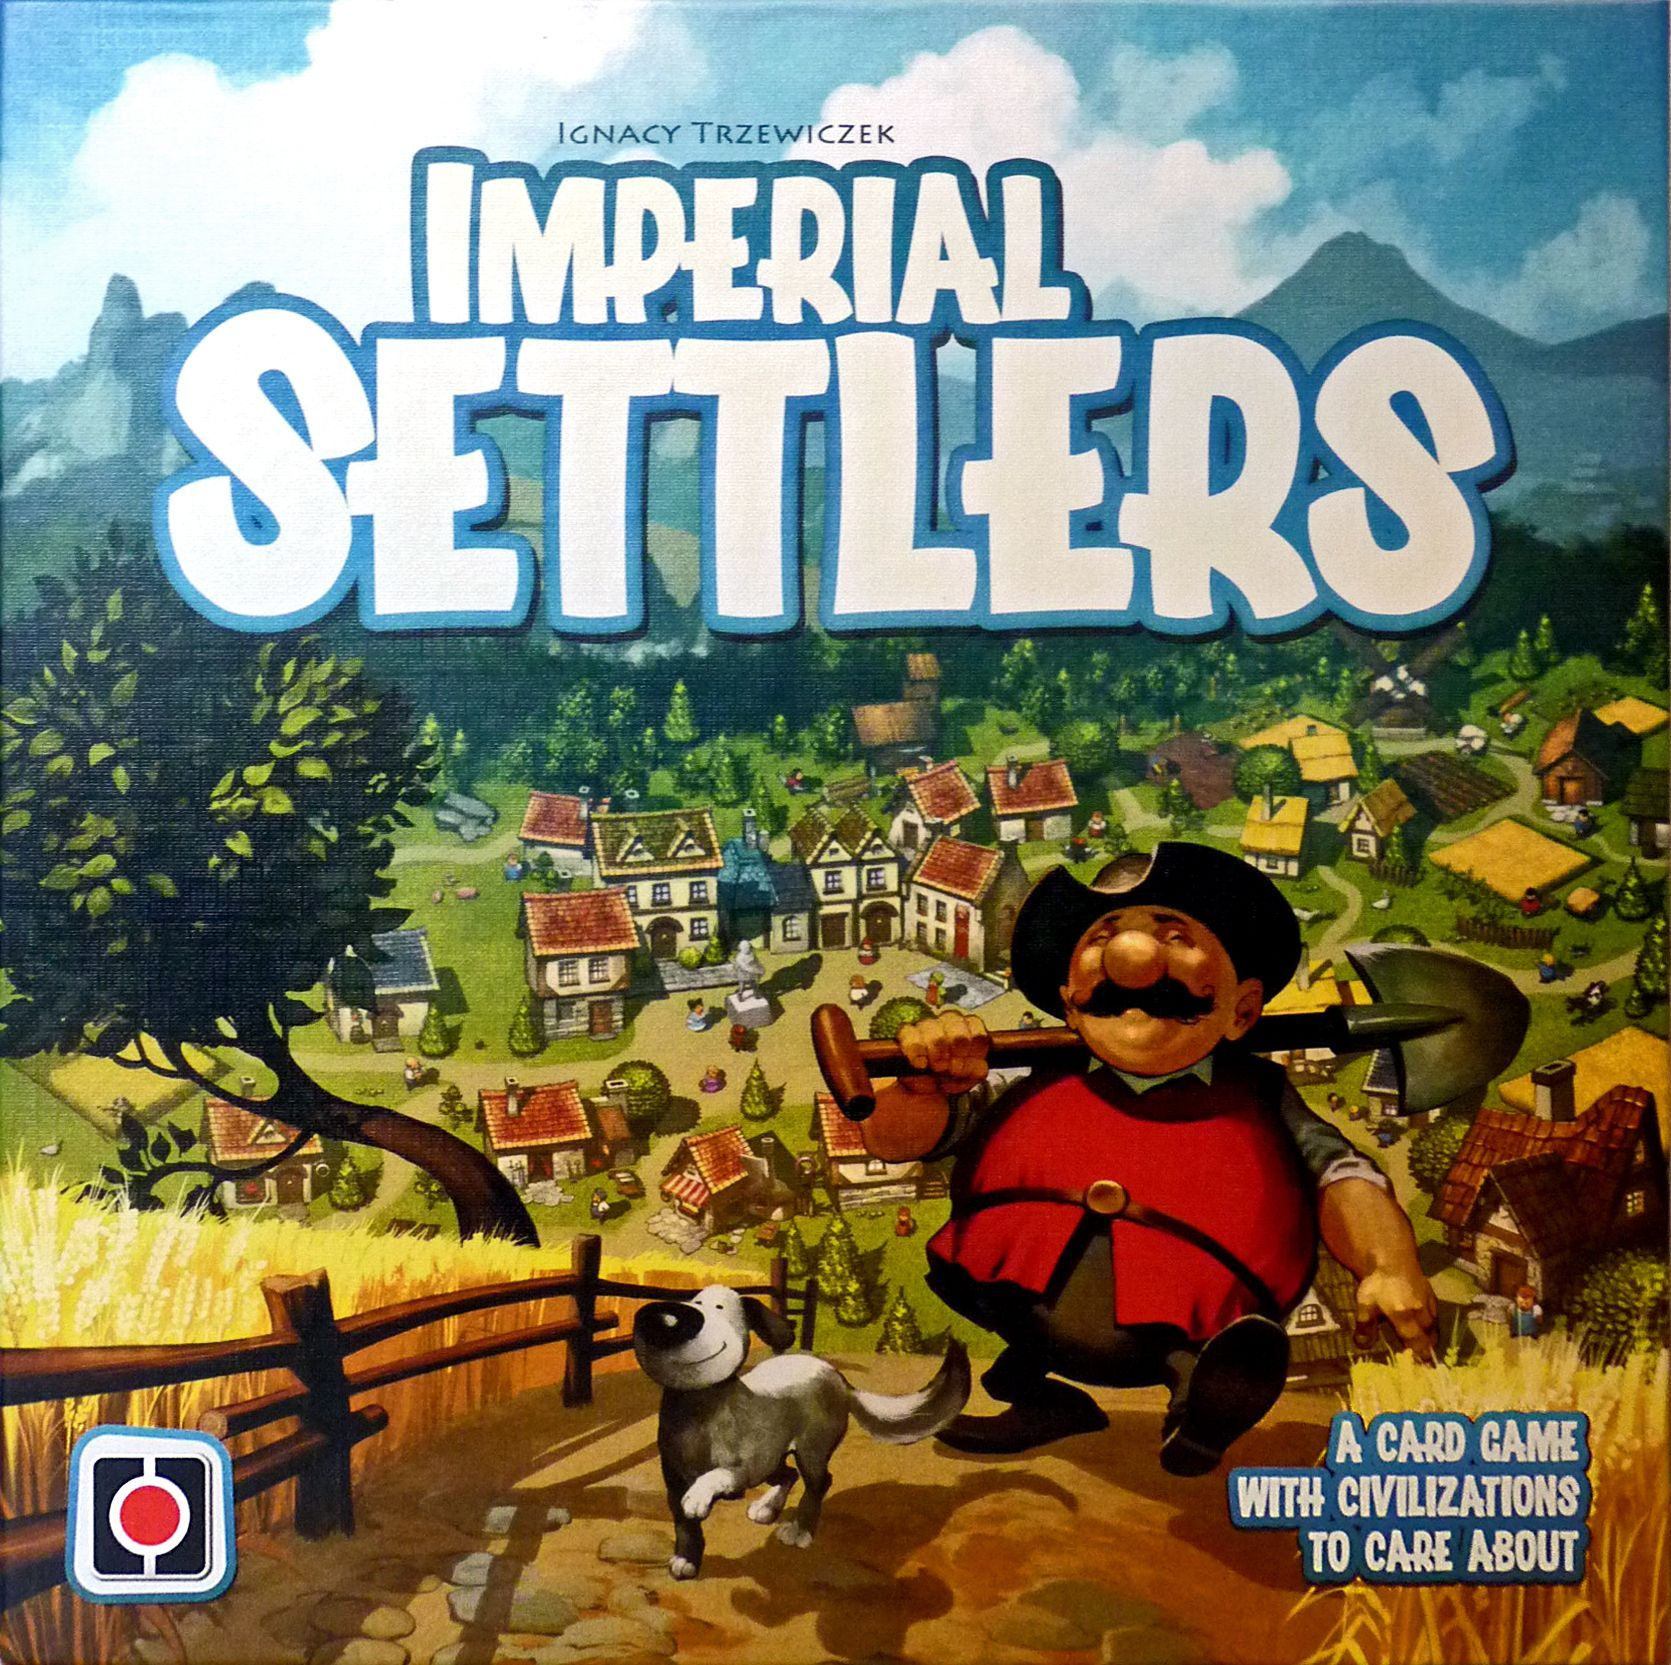 Main image for Imperial Settlers